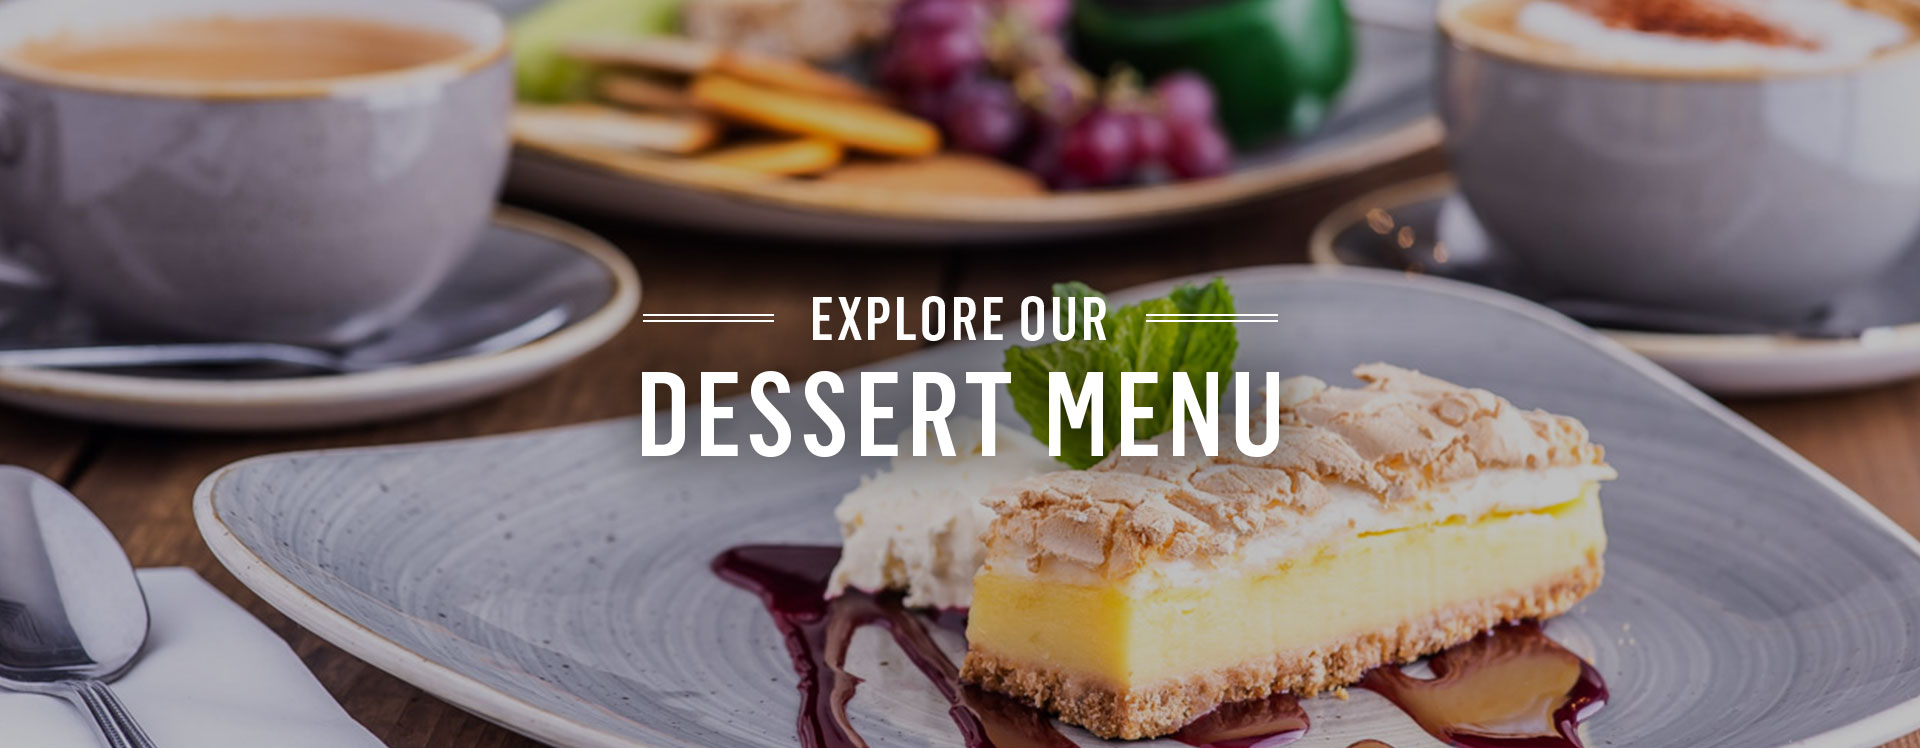 Dessert menu at The Marquis of Granby - Book a table